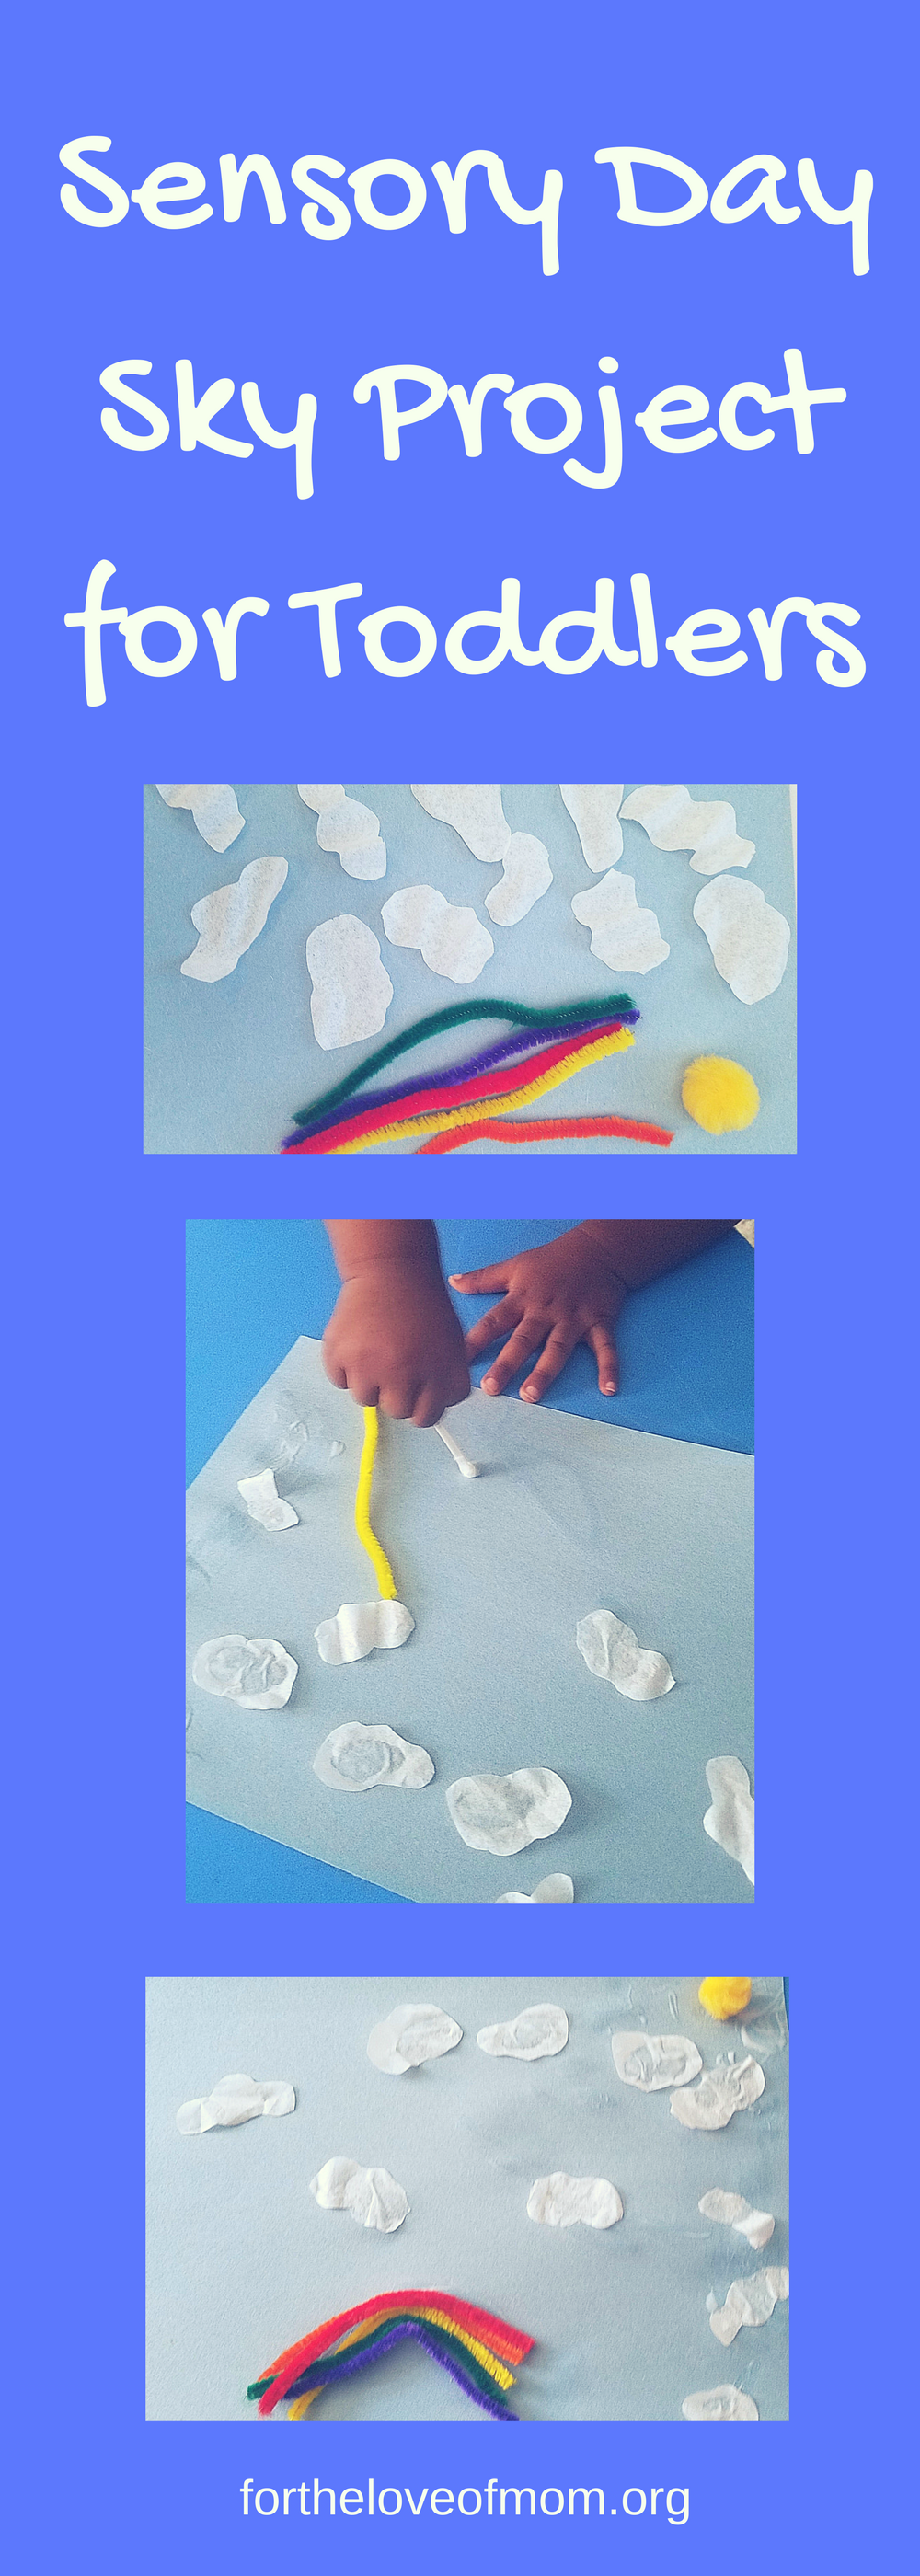 Day Sky Sensory Activity | Cloud Toddler Craft | Sky Toddler Craft | Day Sky Activity for Toddlers | Easy Toddler Crafts | Simple Activities for Toddlers | Playschool Crafts for Toddlers | #toddlercrafts | #toddleractivity | #cloudcraft | www.fortheloveofmom.org